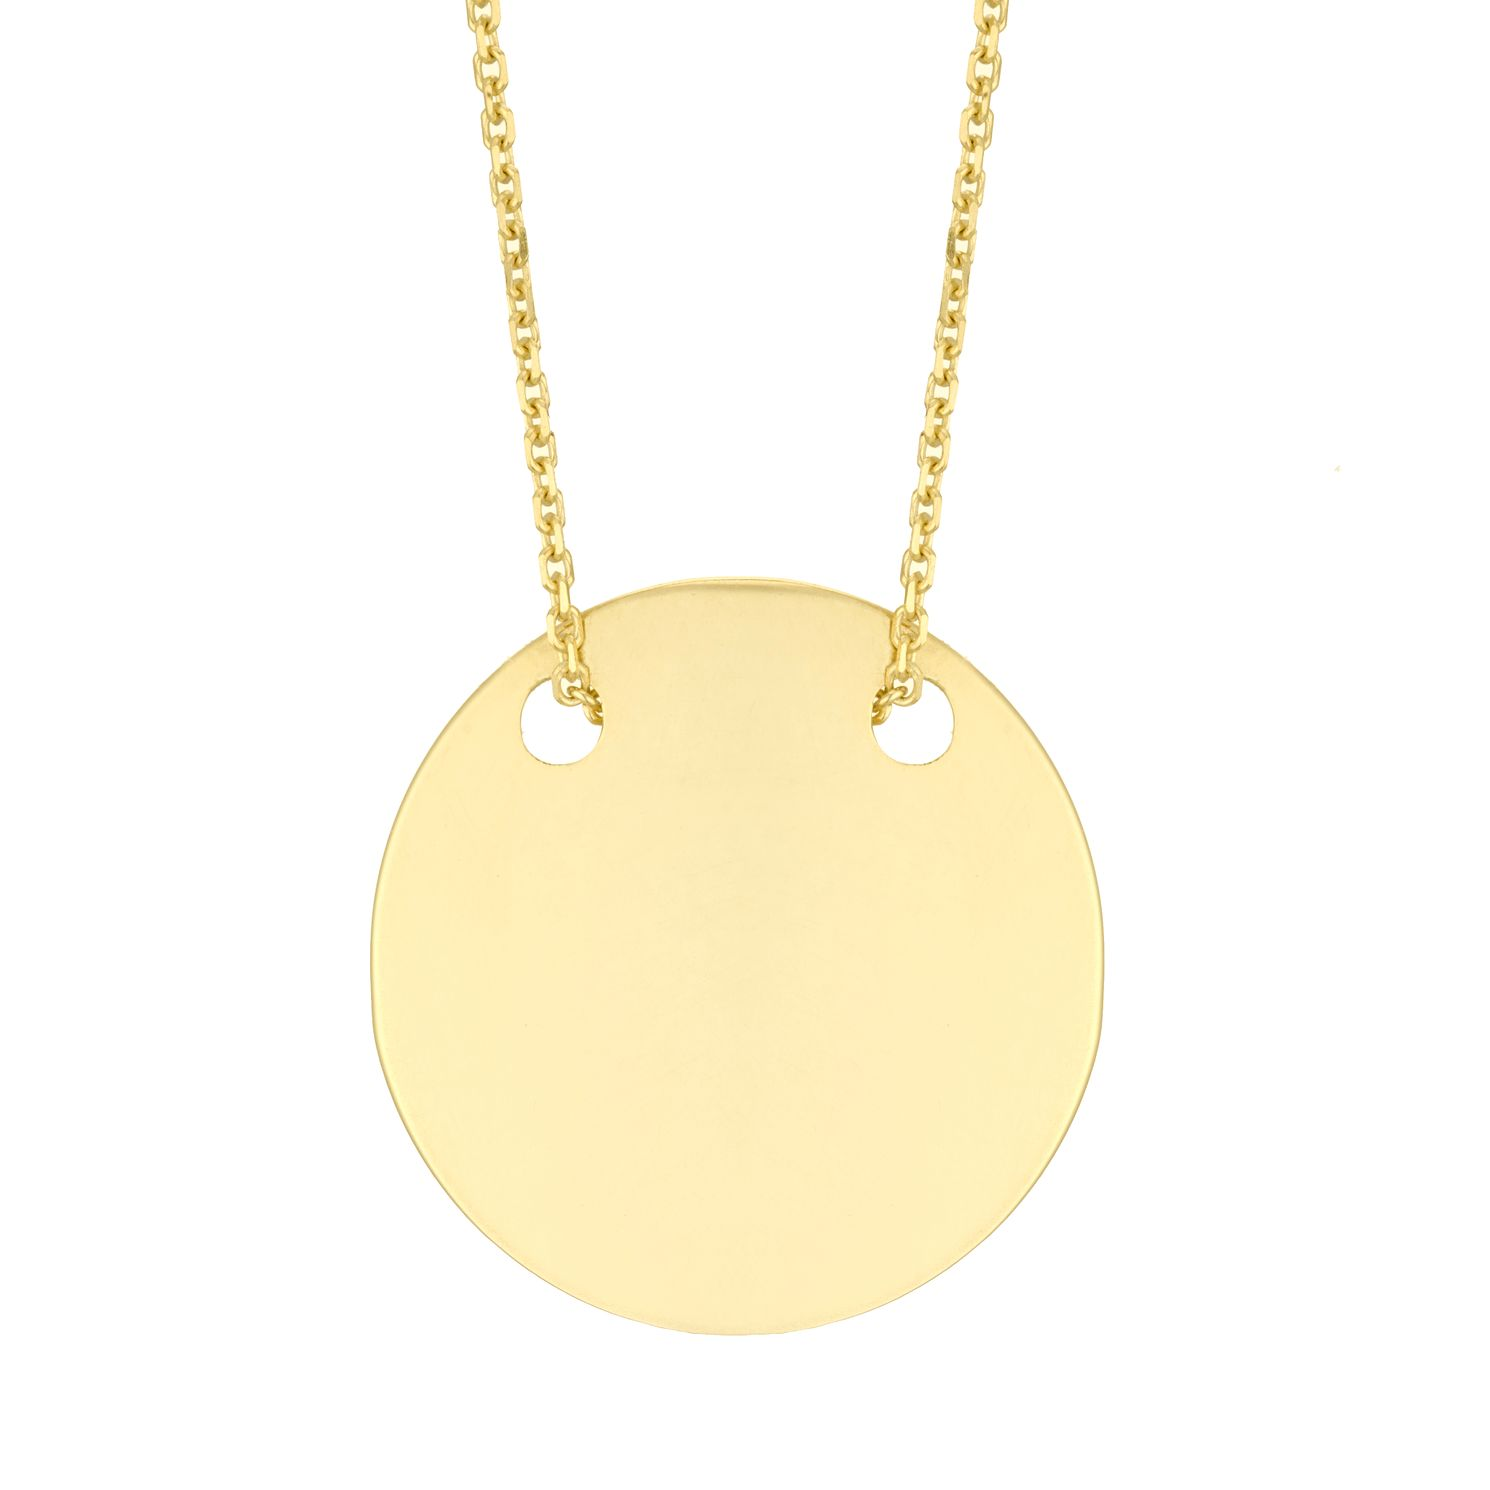 9ct Yellow Gold Round Disc Pendant - Product number 4670256